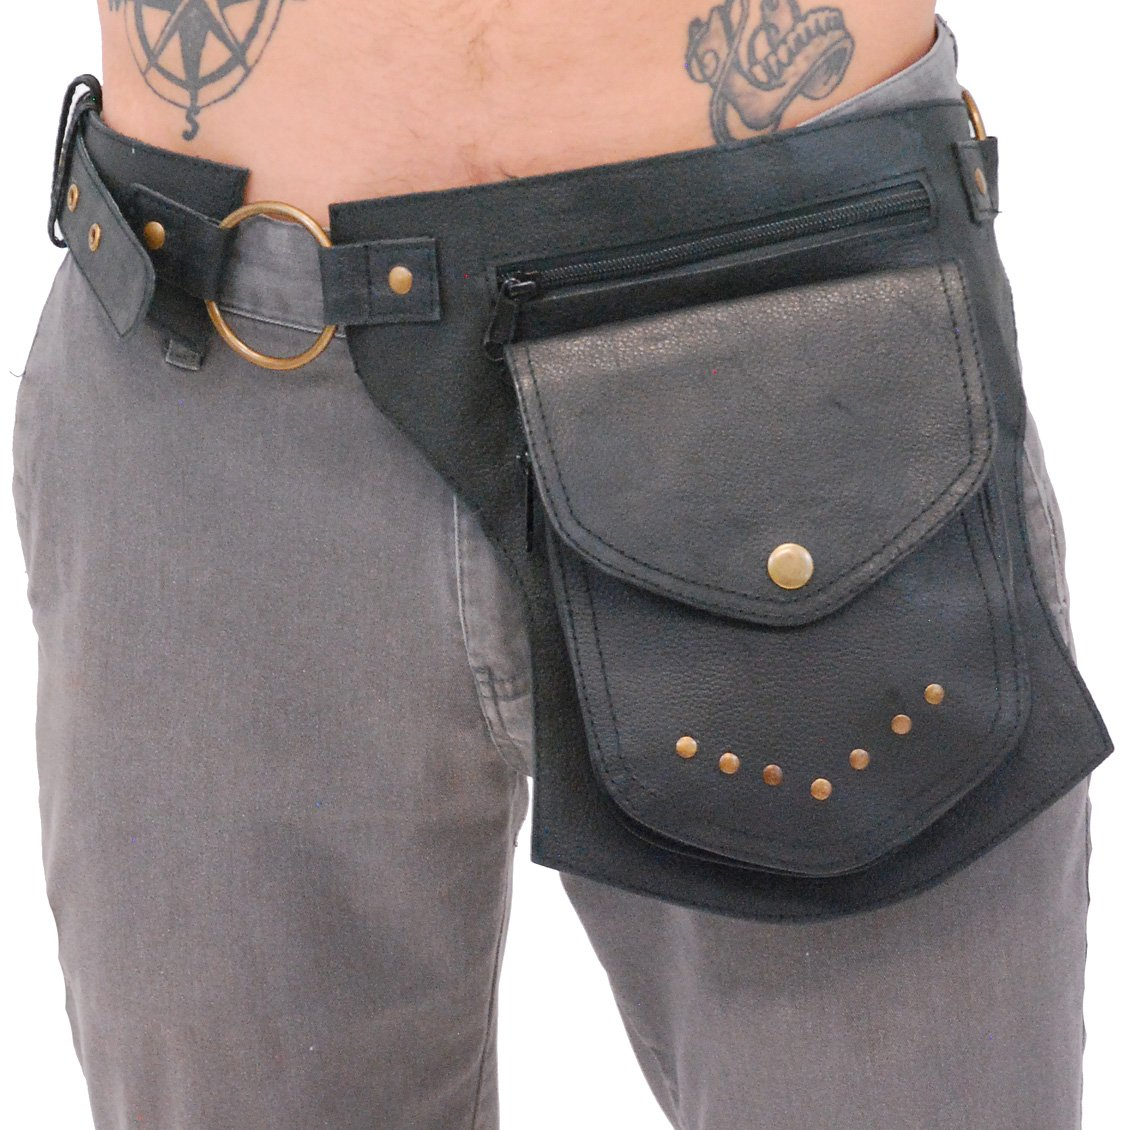 Jamin Leather Tall Multi-Pocket Extra Heavy Cowhide Leather Waist Bag w//O-Rings